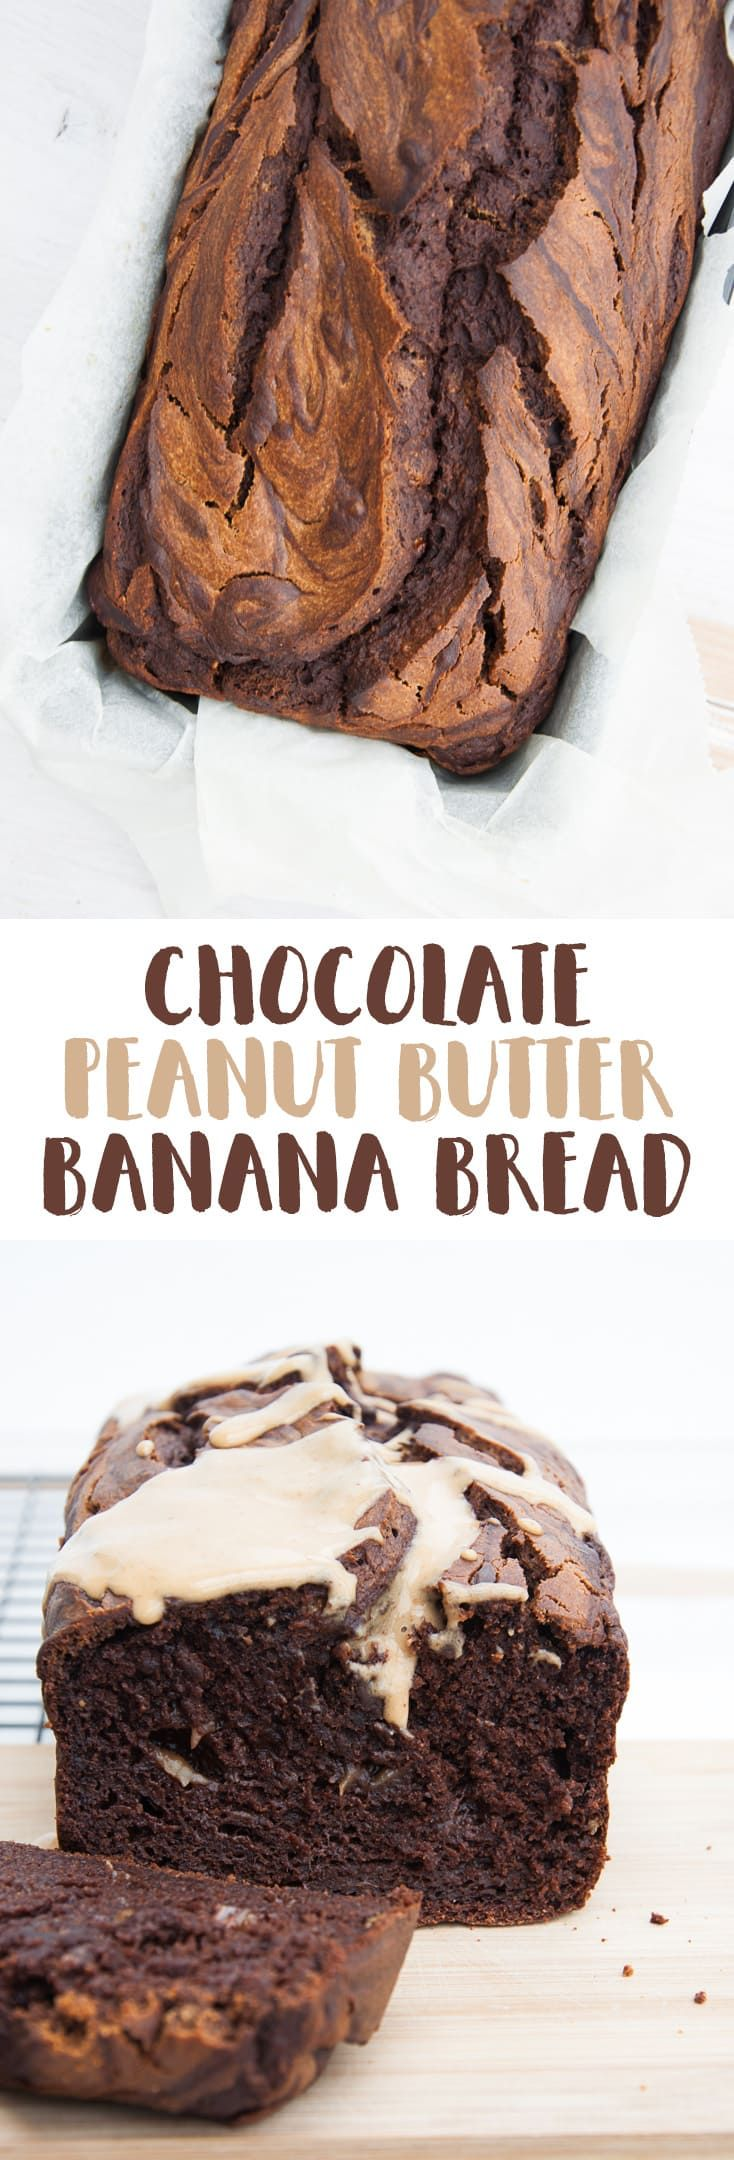 Banana bread is always a good use for overripe bananas. But this vegan Chocolate Peanut Butter Banana Bread is everything you've ever wanted!